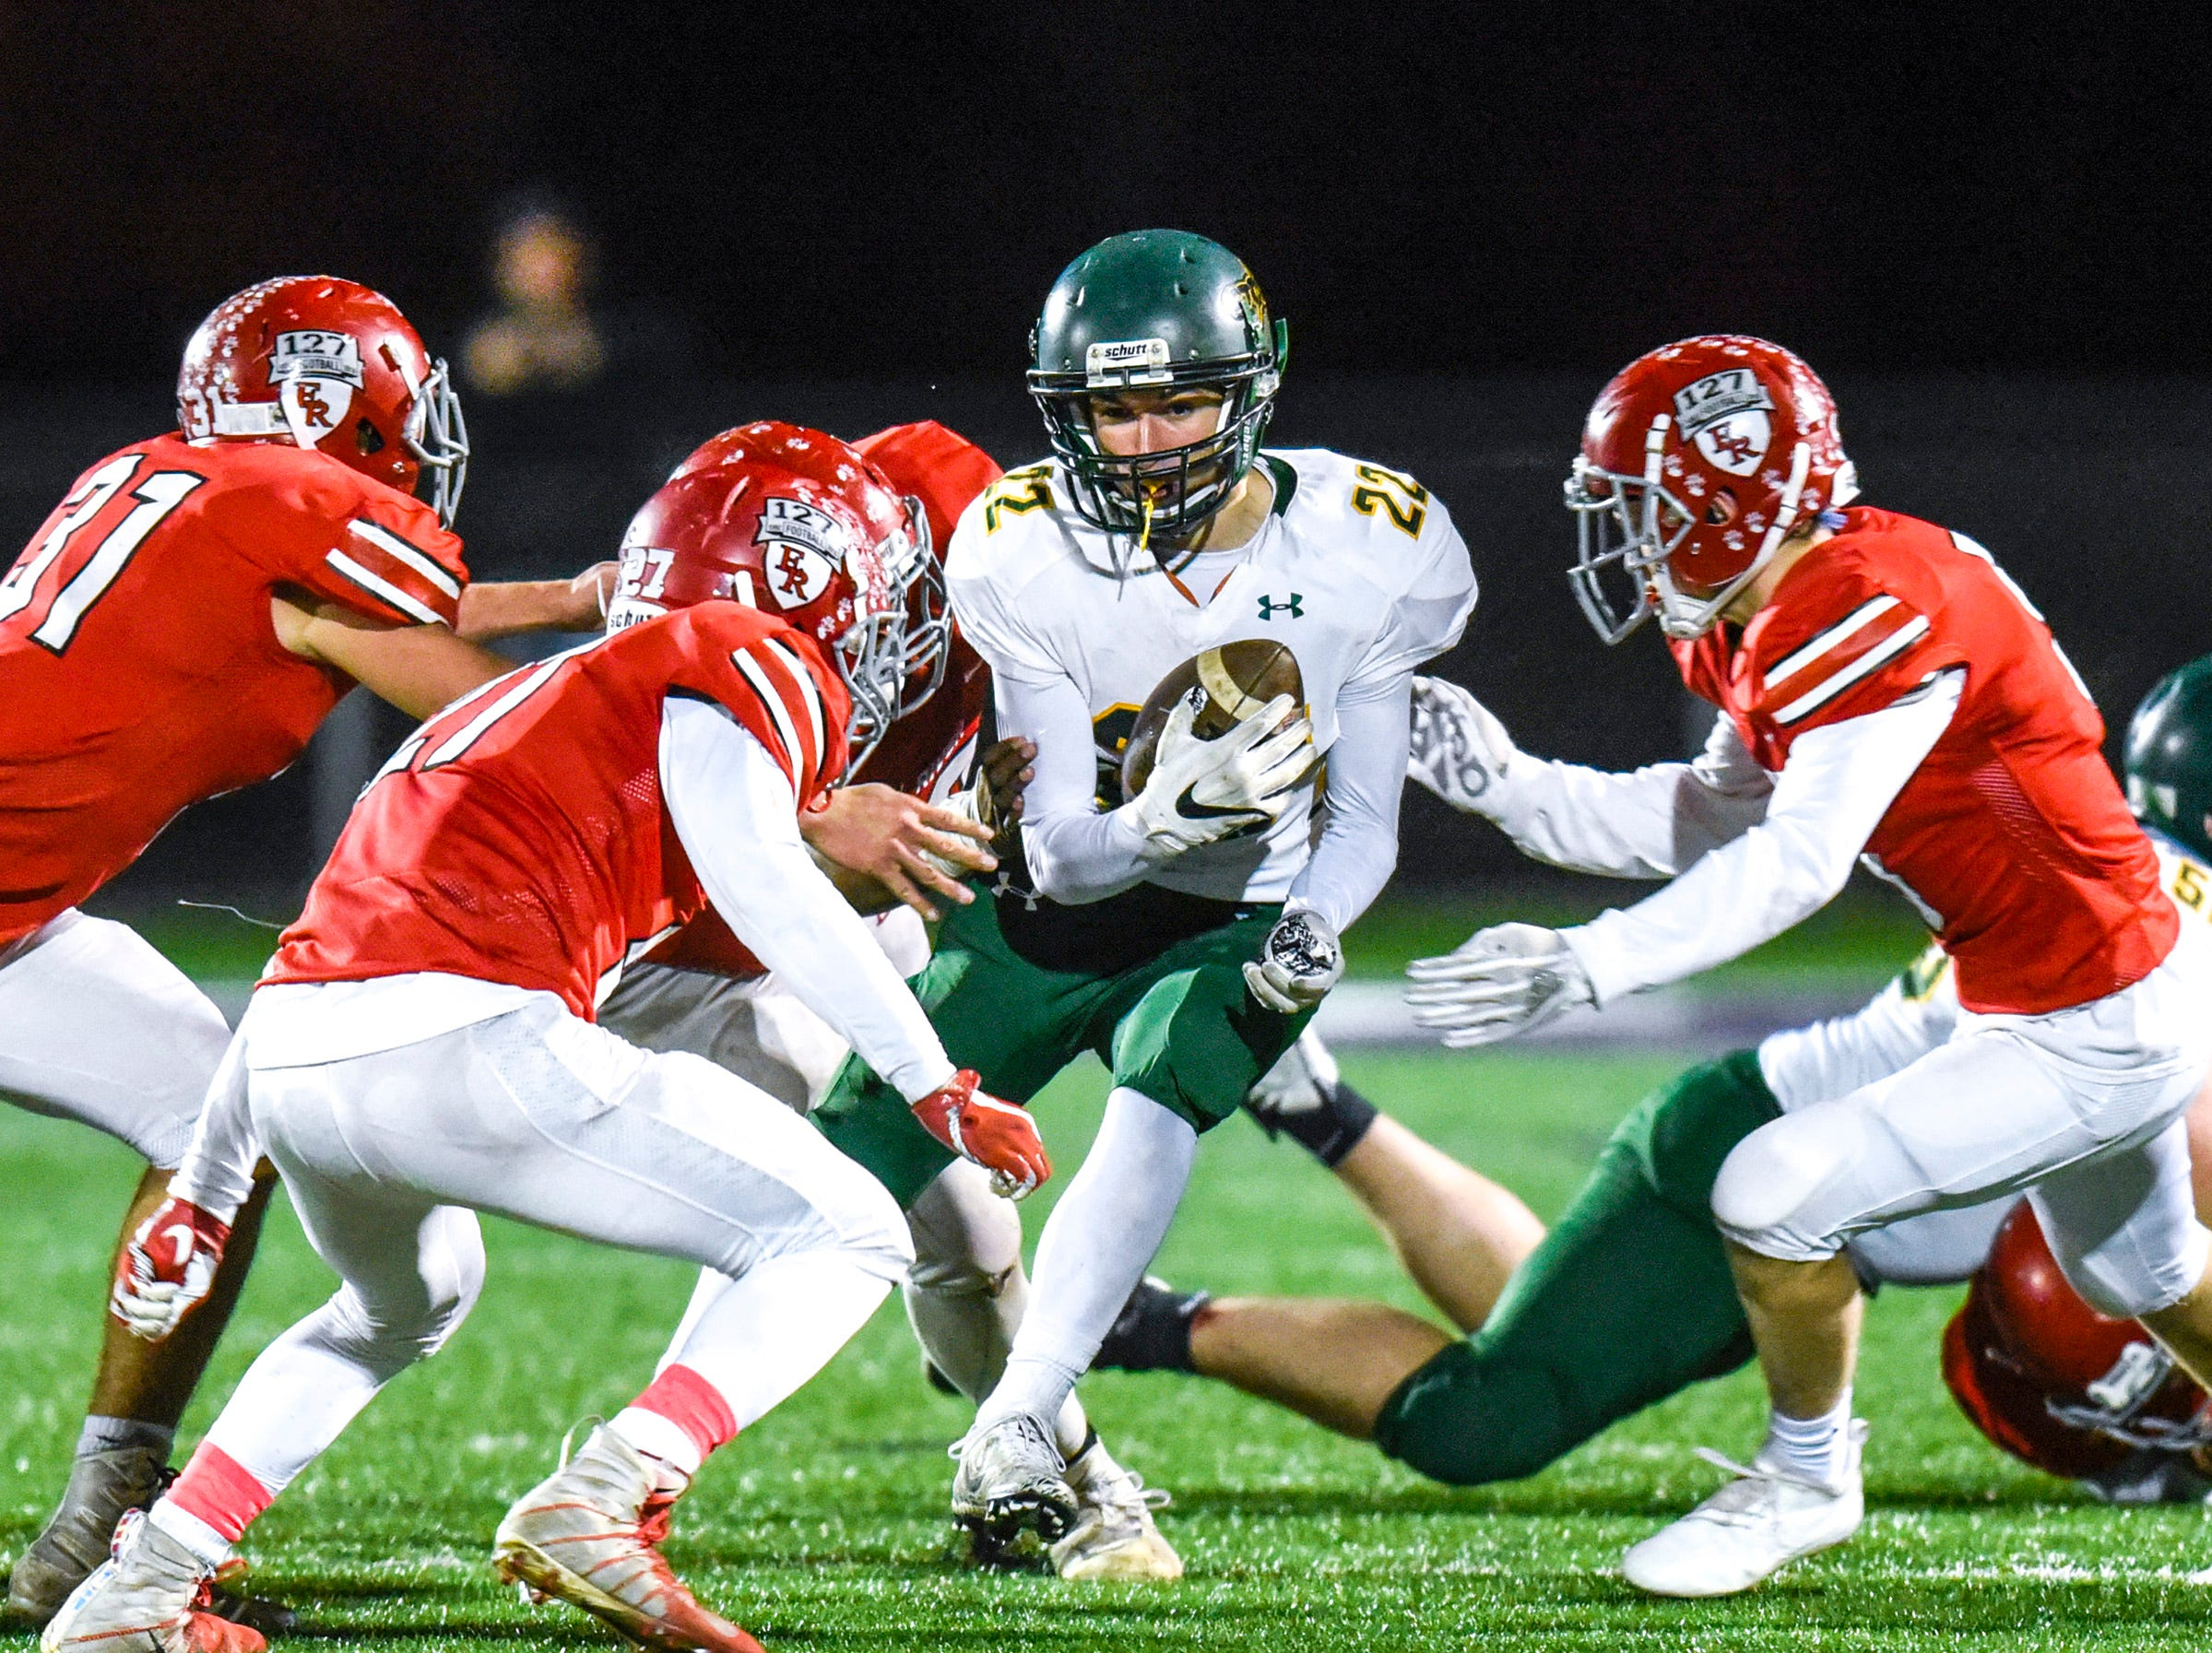 Sauk Rapids' Christian Rodriguez is tackled by Elk River on a run during the first half Friday, Nov. 2, in the Section 6-5A championship at Buffalo High School.